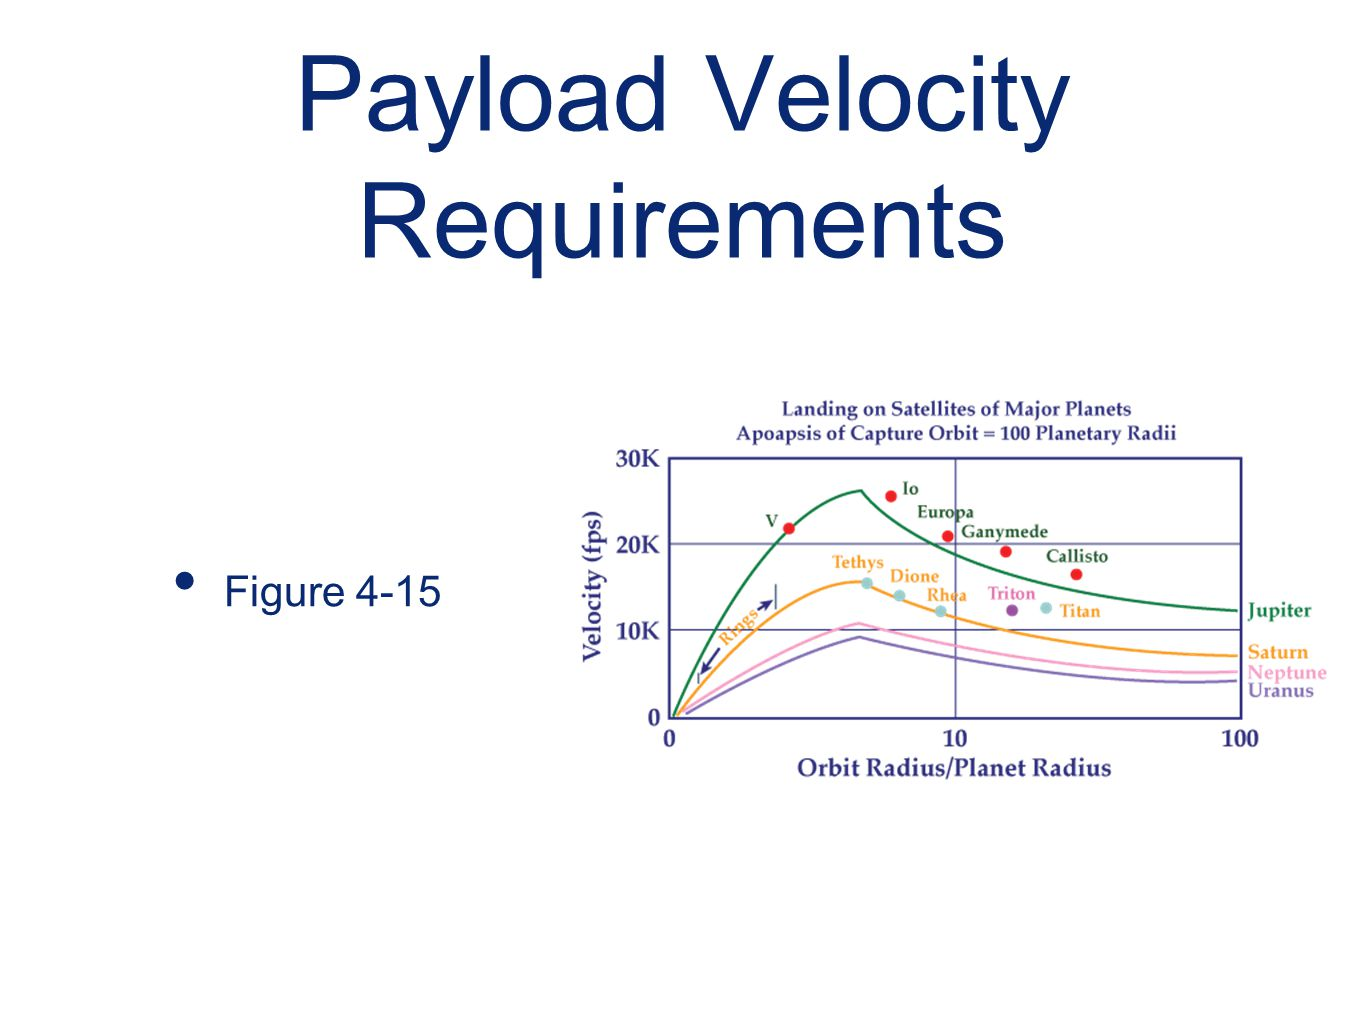 Payload Velocity Requirements Figure 4-15